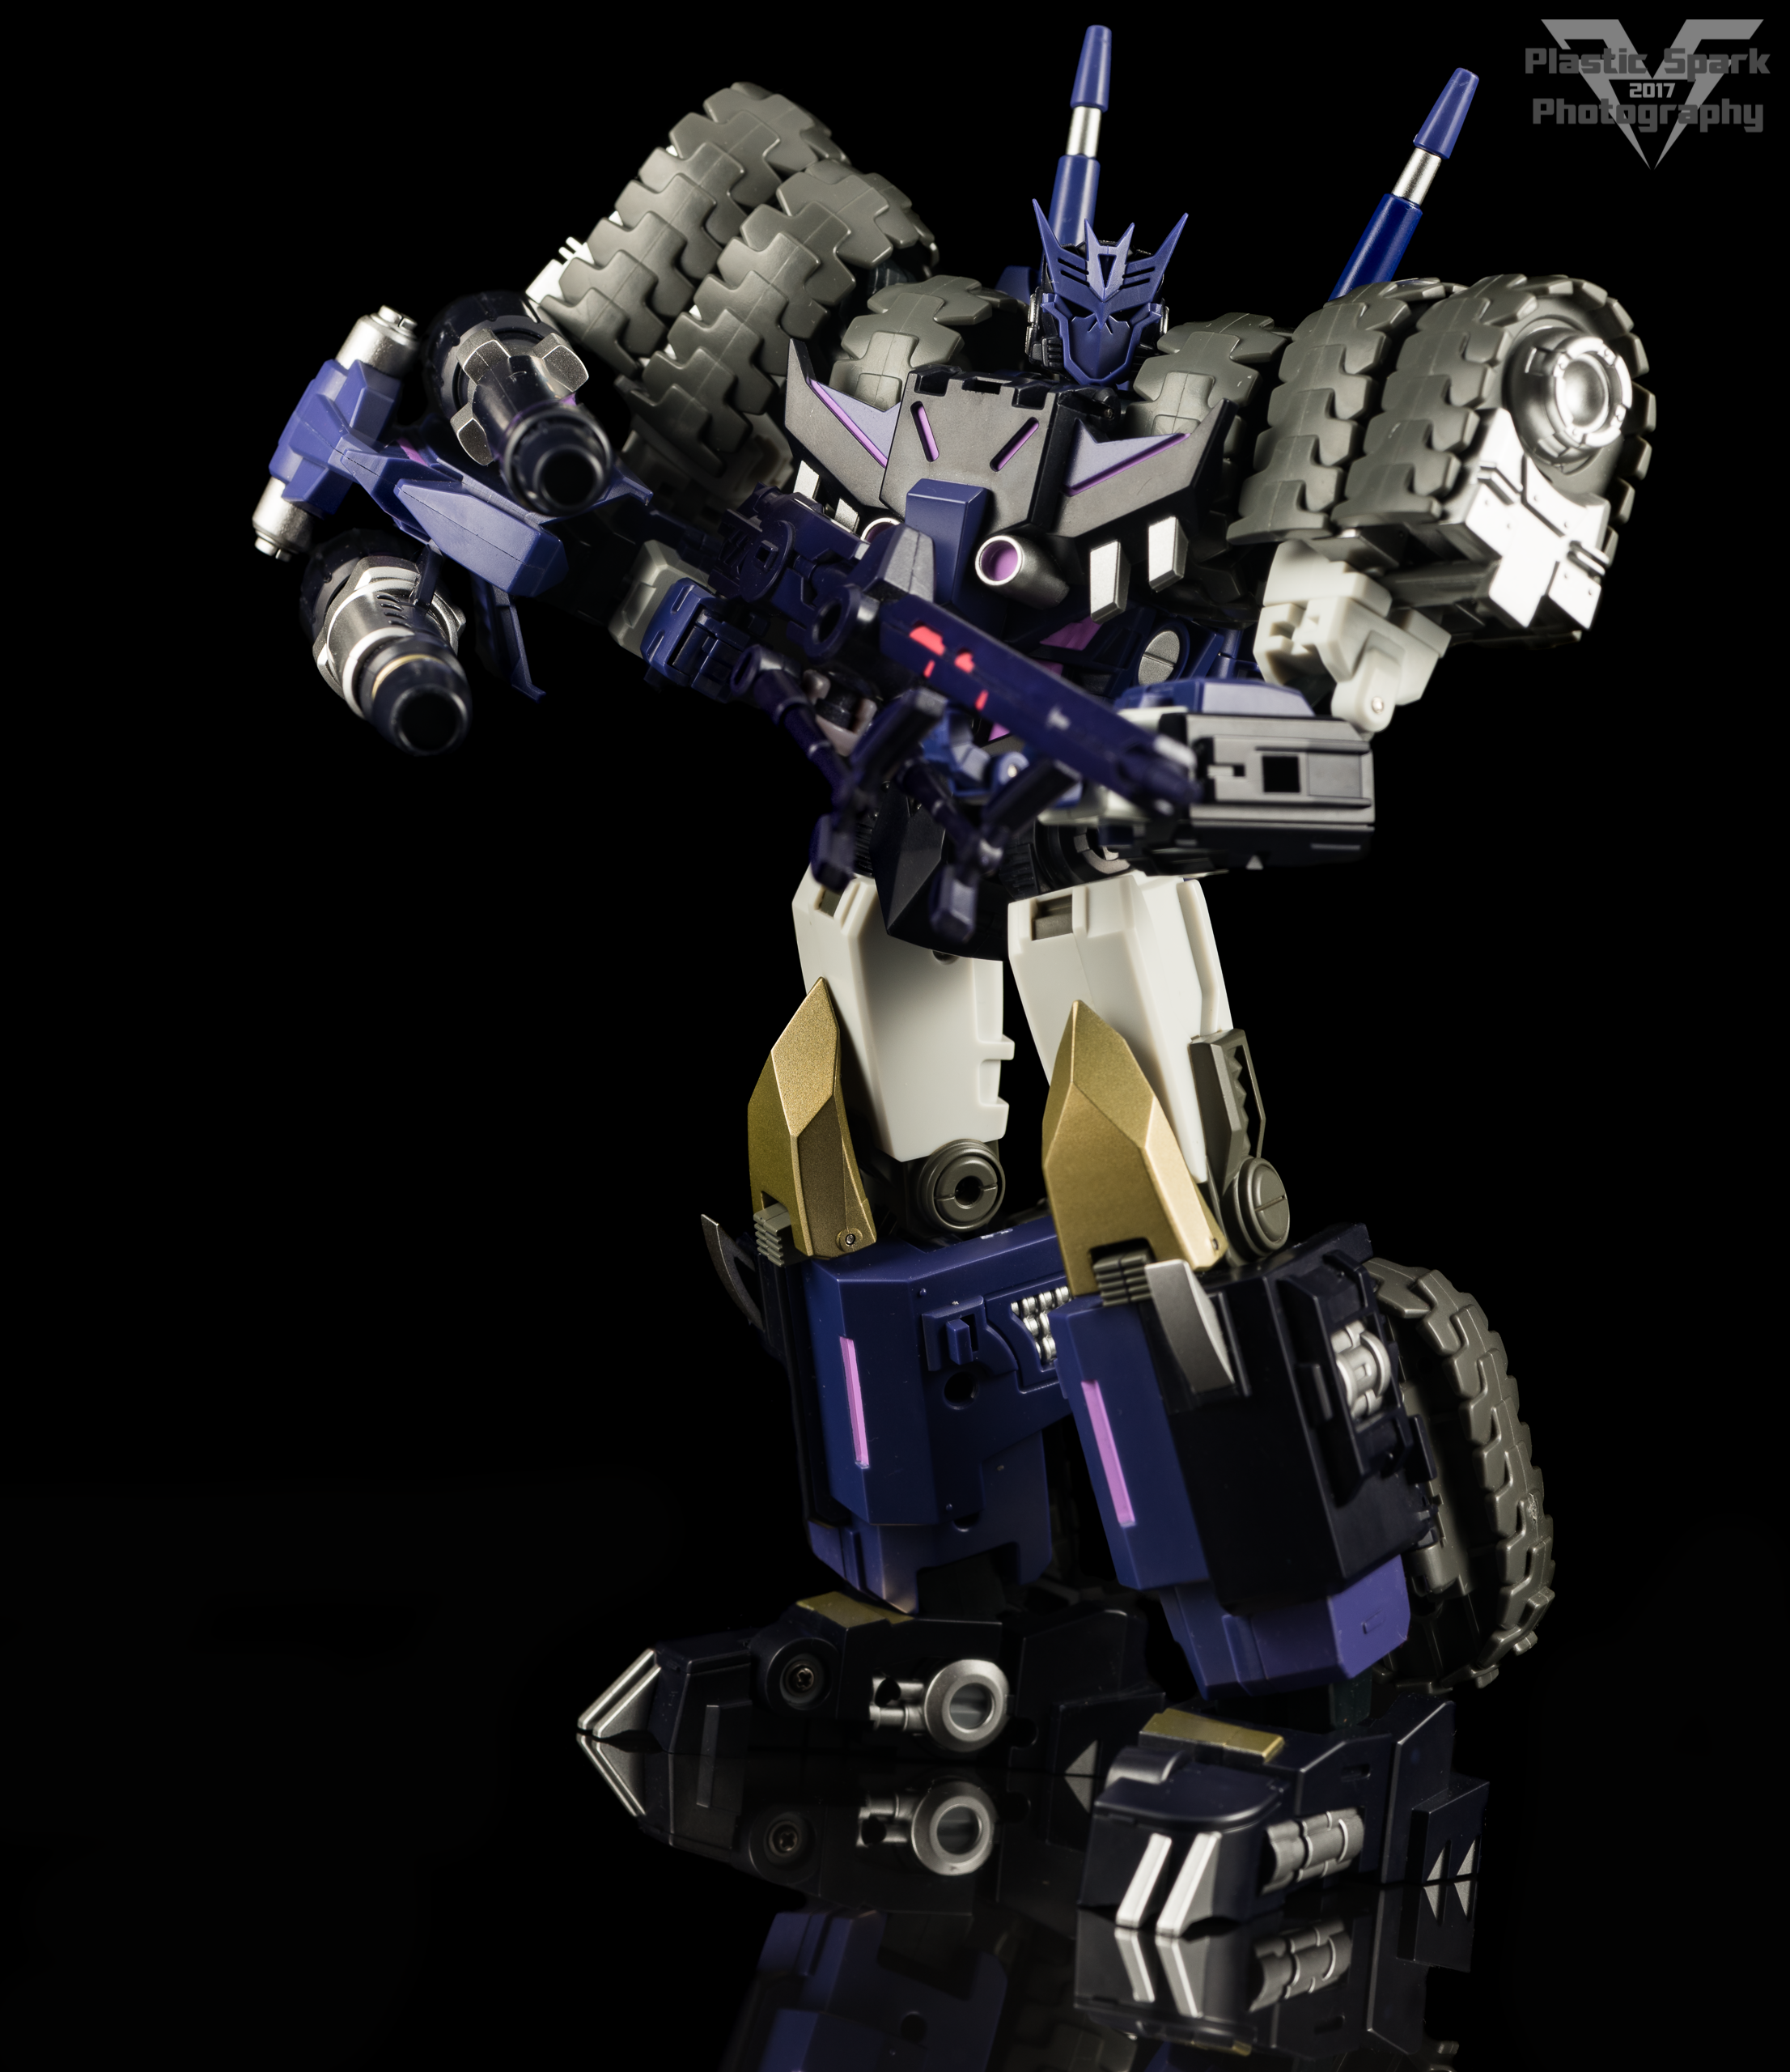 Mastermind-Creations-R-19-Kultur-(18-of-24).png